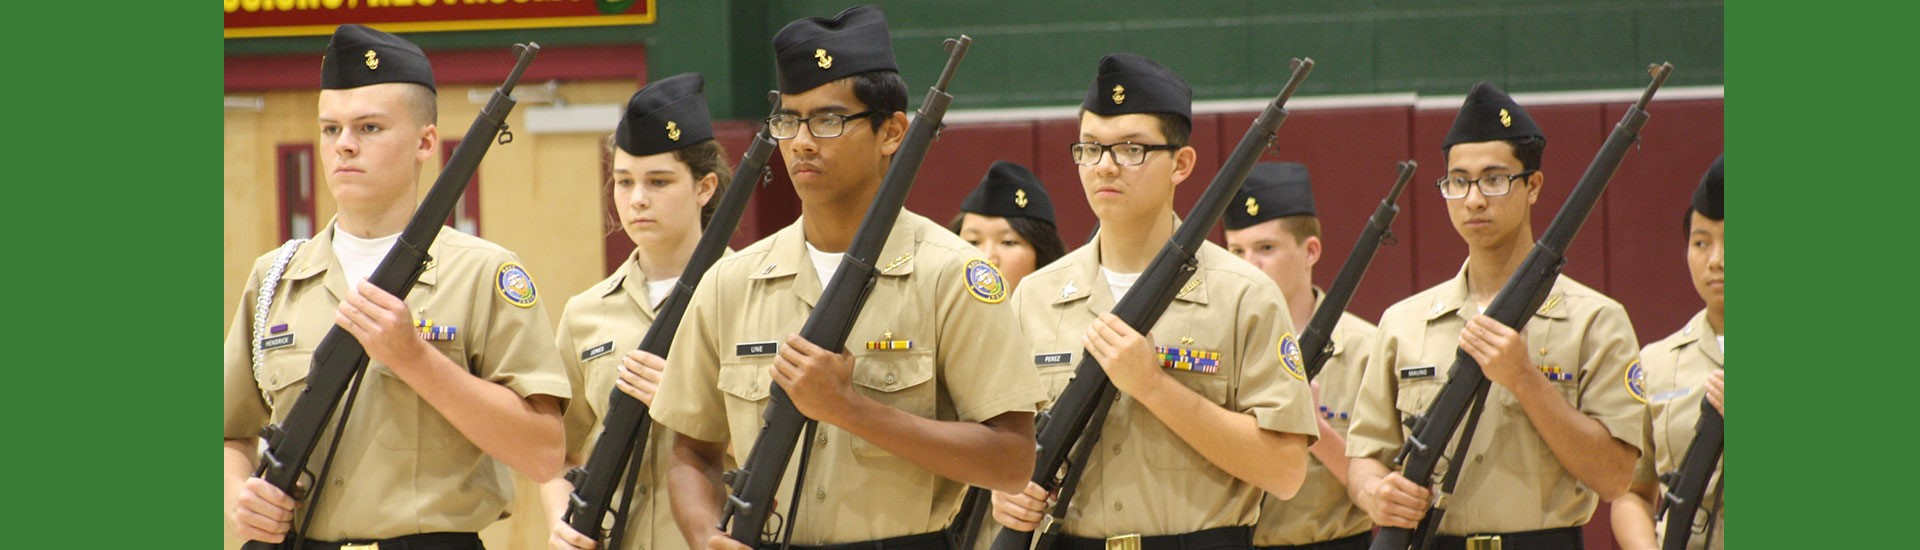 Cadets with rifles